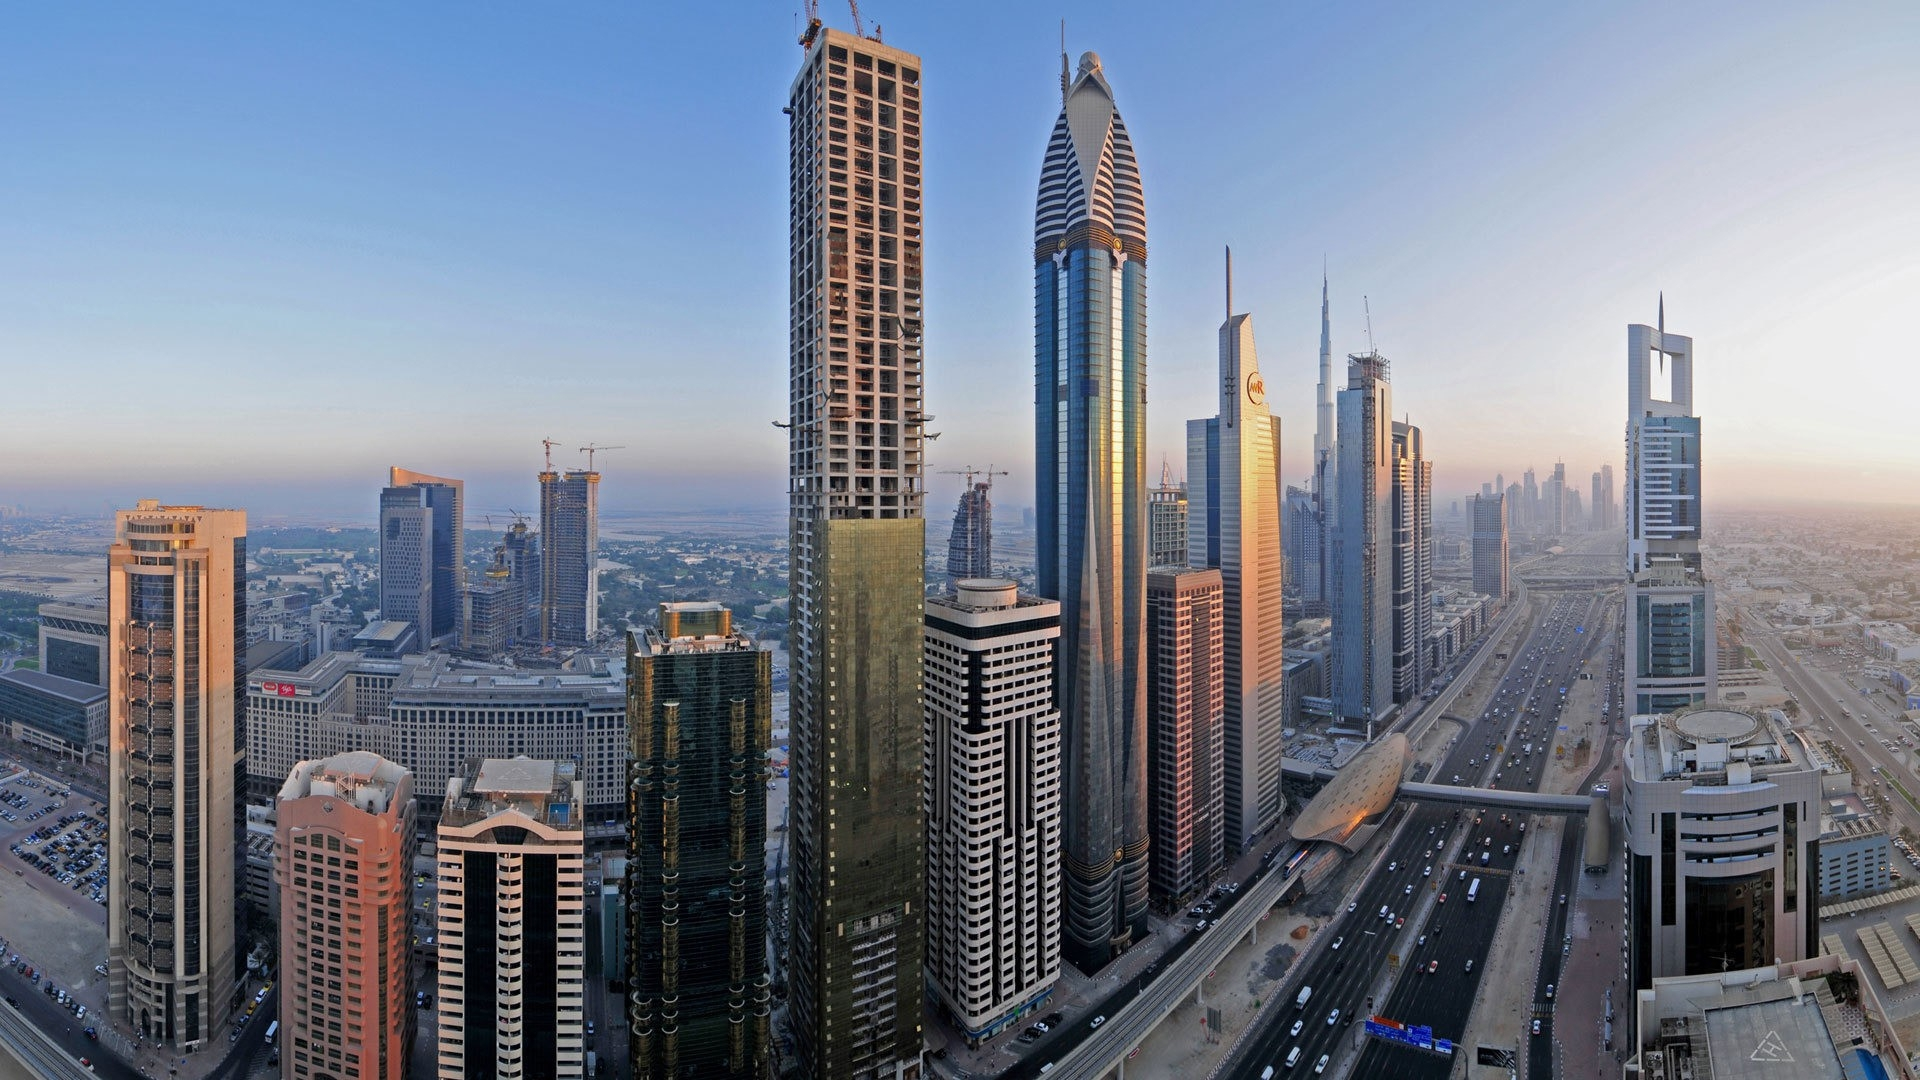 32 Most Beautiful Dubai Wallpapers For Download 1920x1080